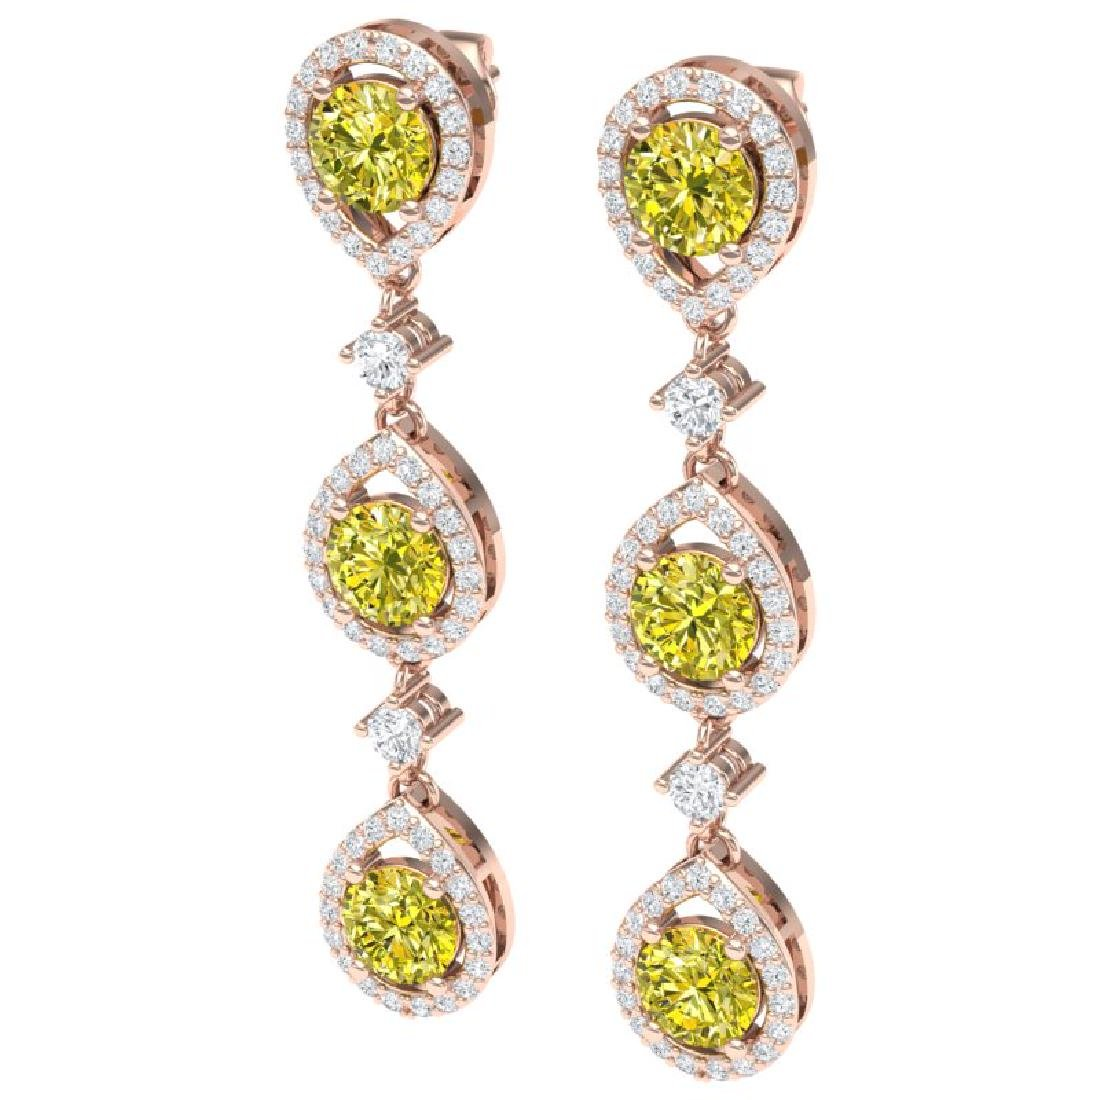 5.11 CTW Fancy Yellow SI Diamond Earrings 18K Rose Gold - 2